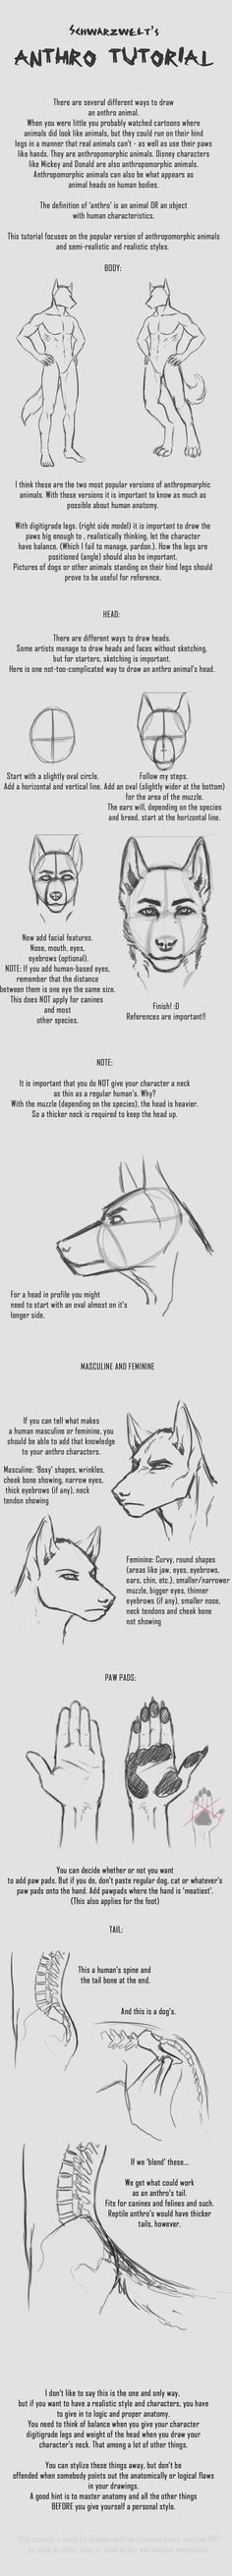 ANTHRO TUTORIAL by Delta141.deviantart.com on @deviantART